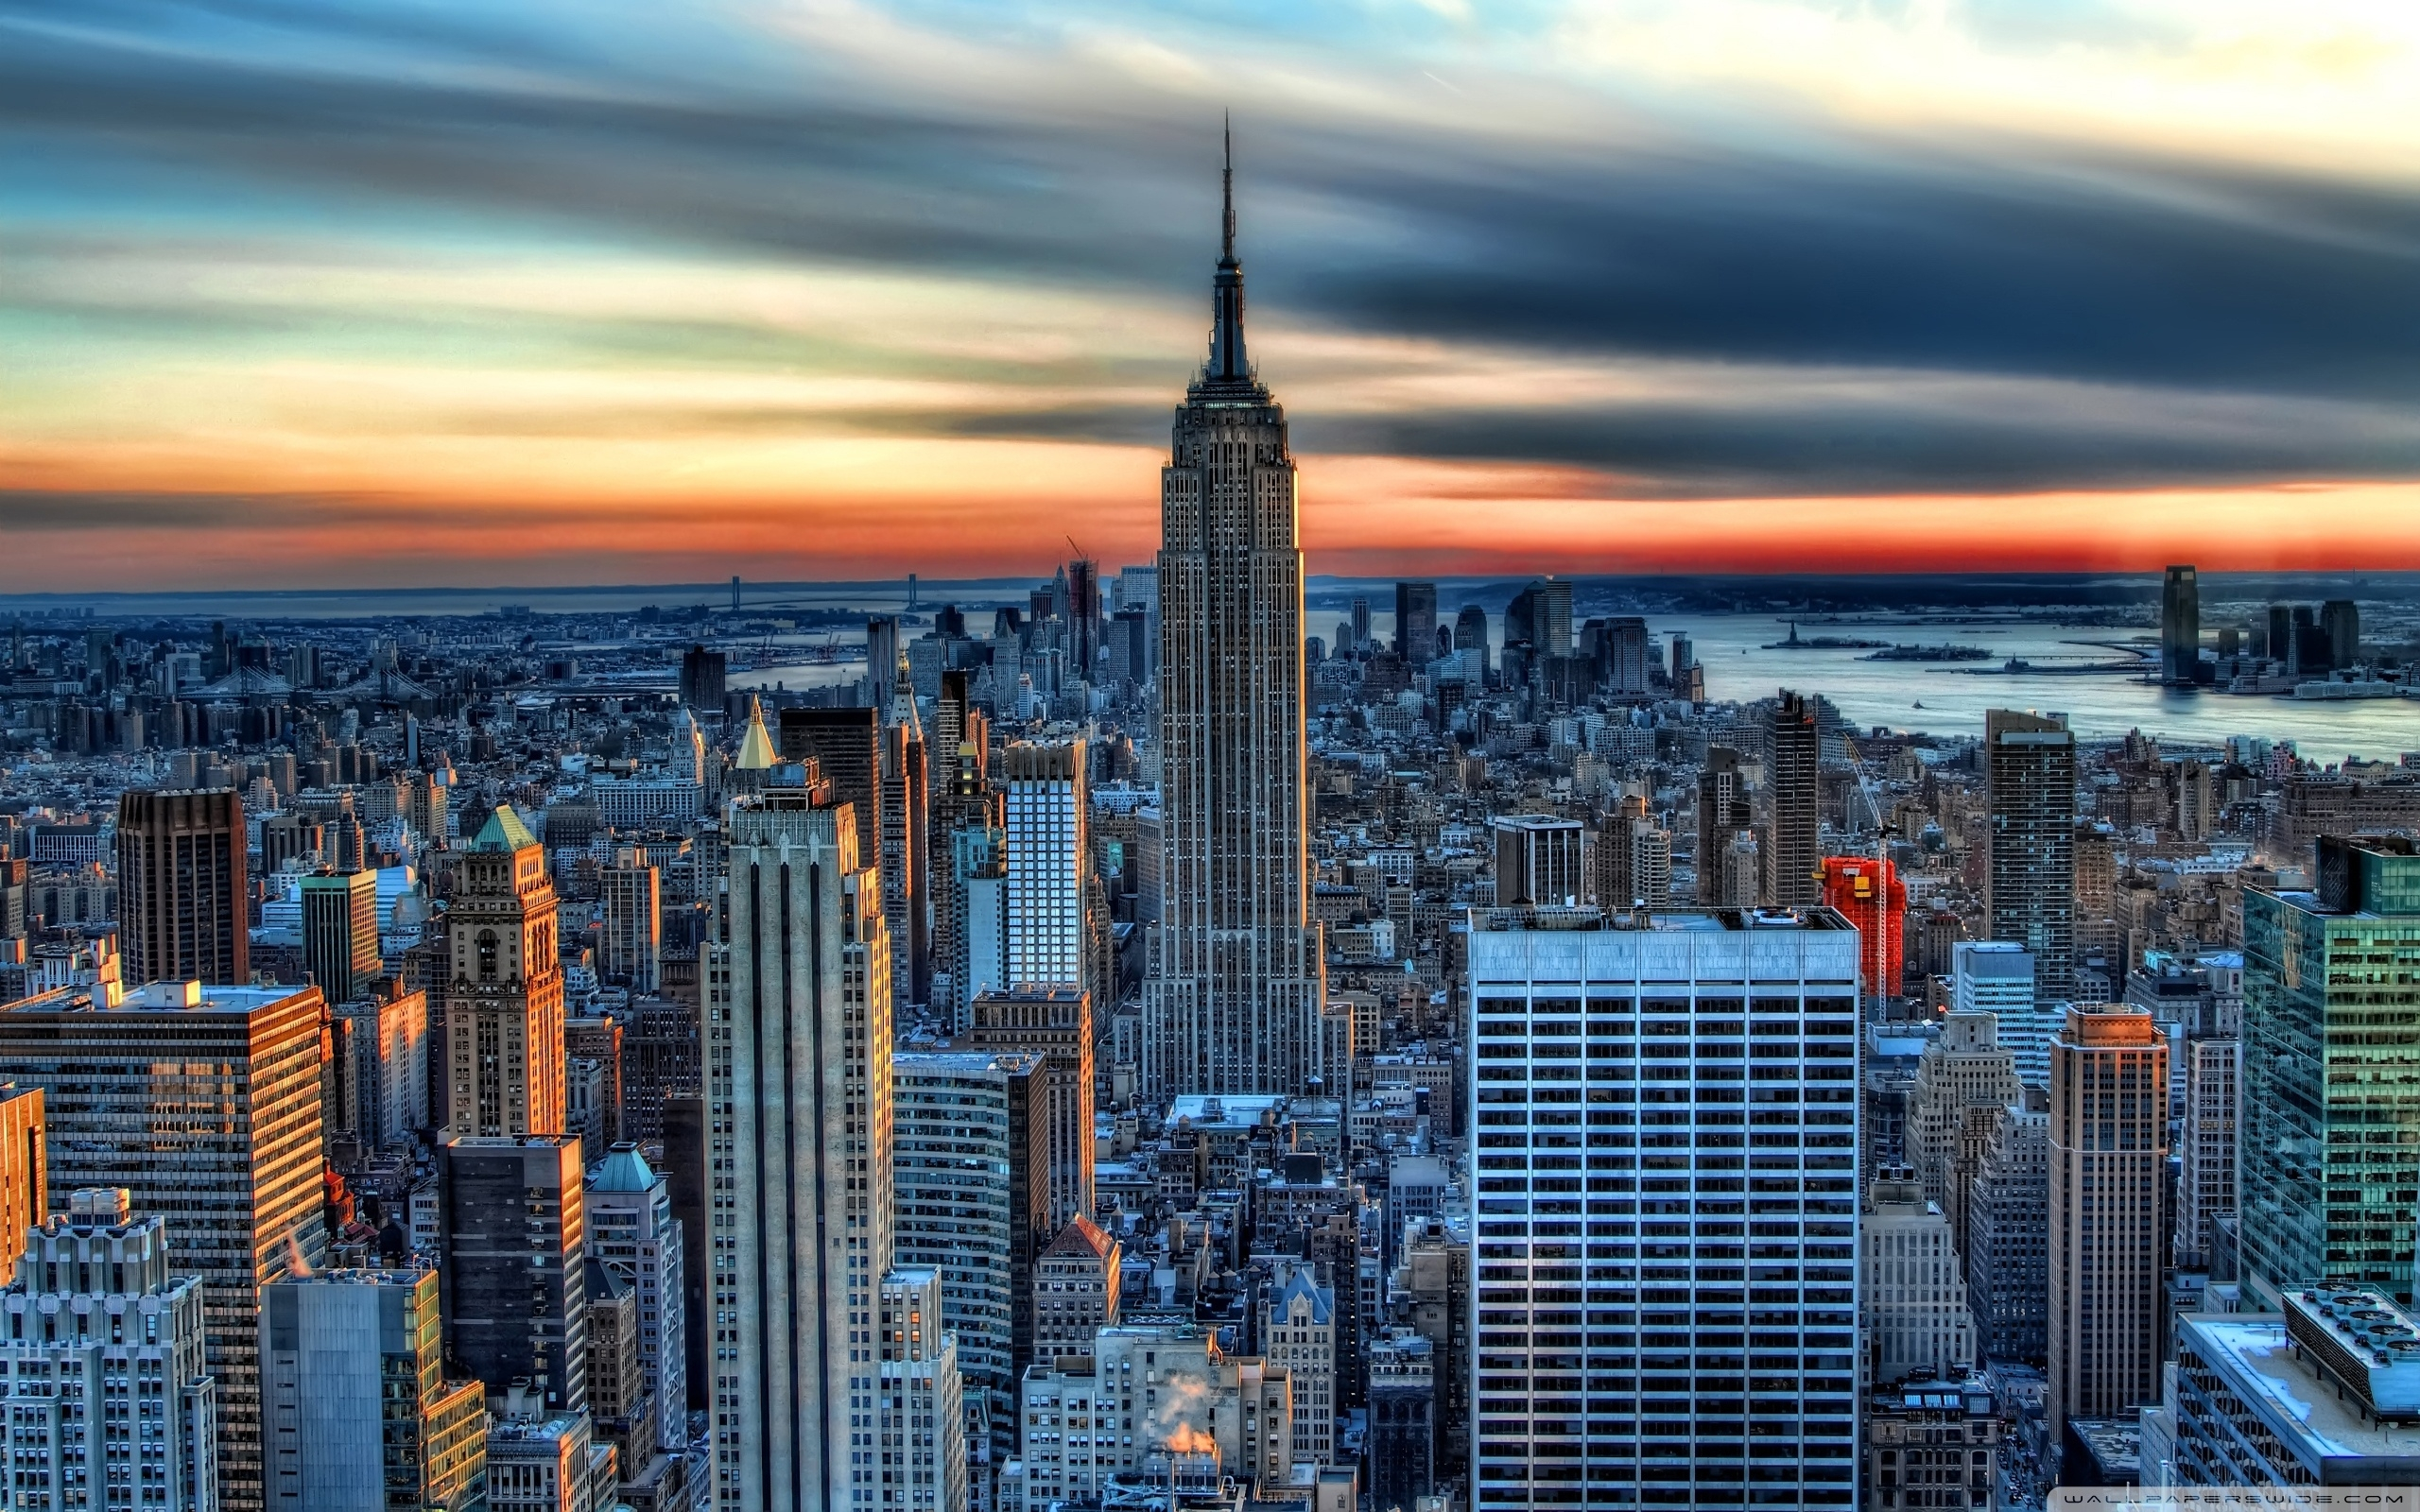 empire state building hdr ❤ 4k hd desktop wallpaper for 4k ultra hd